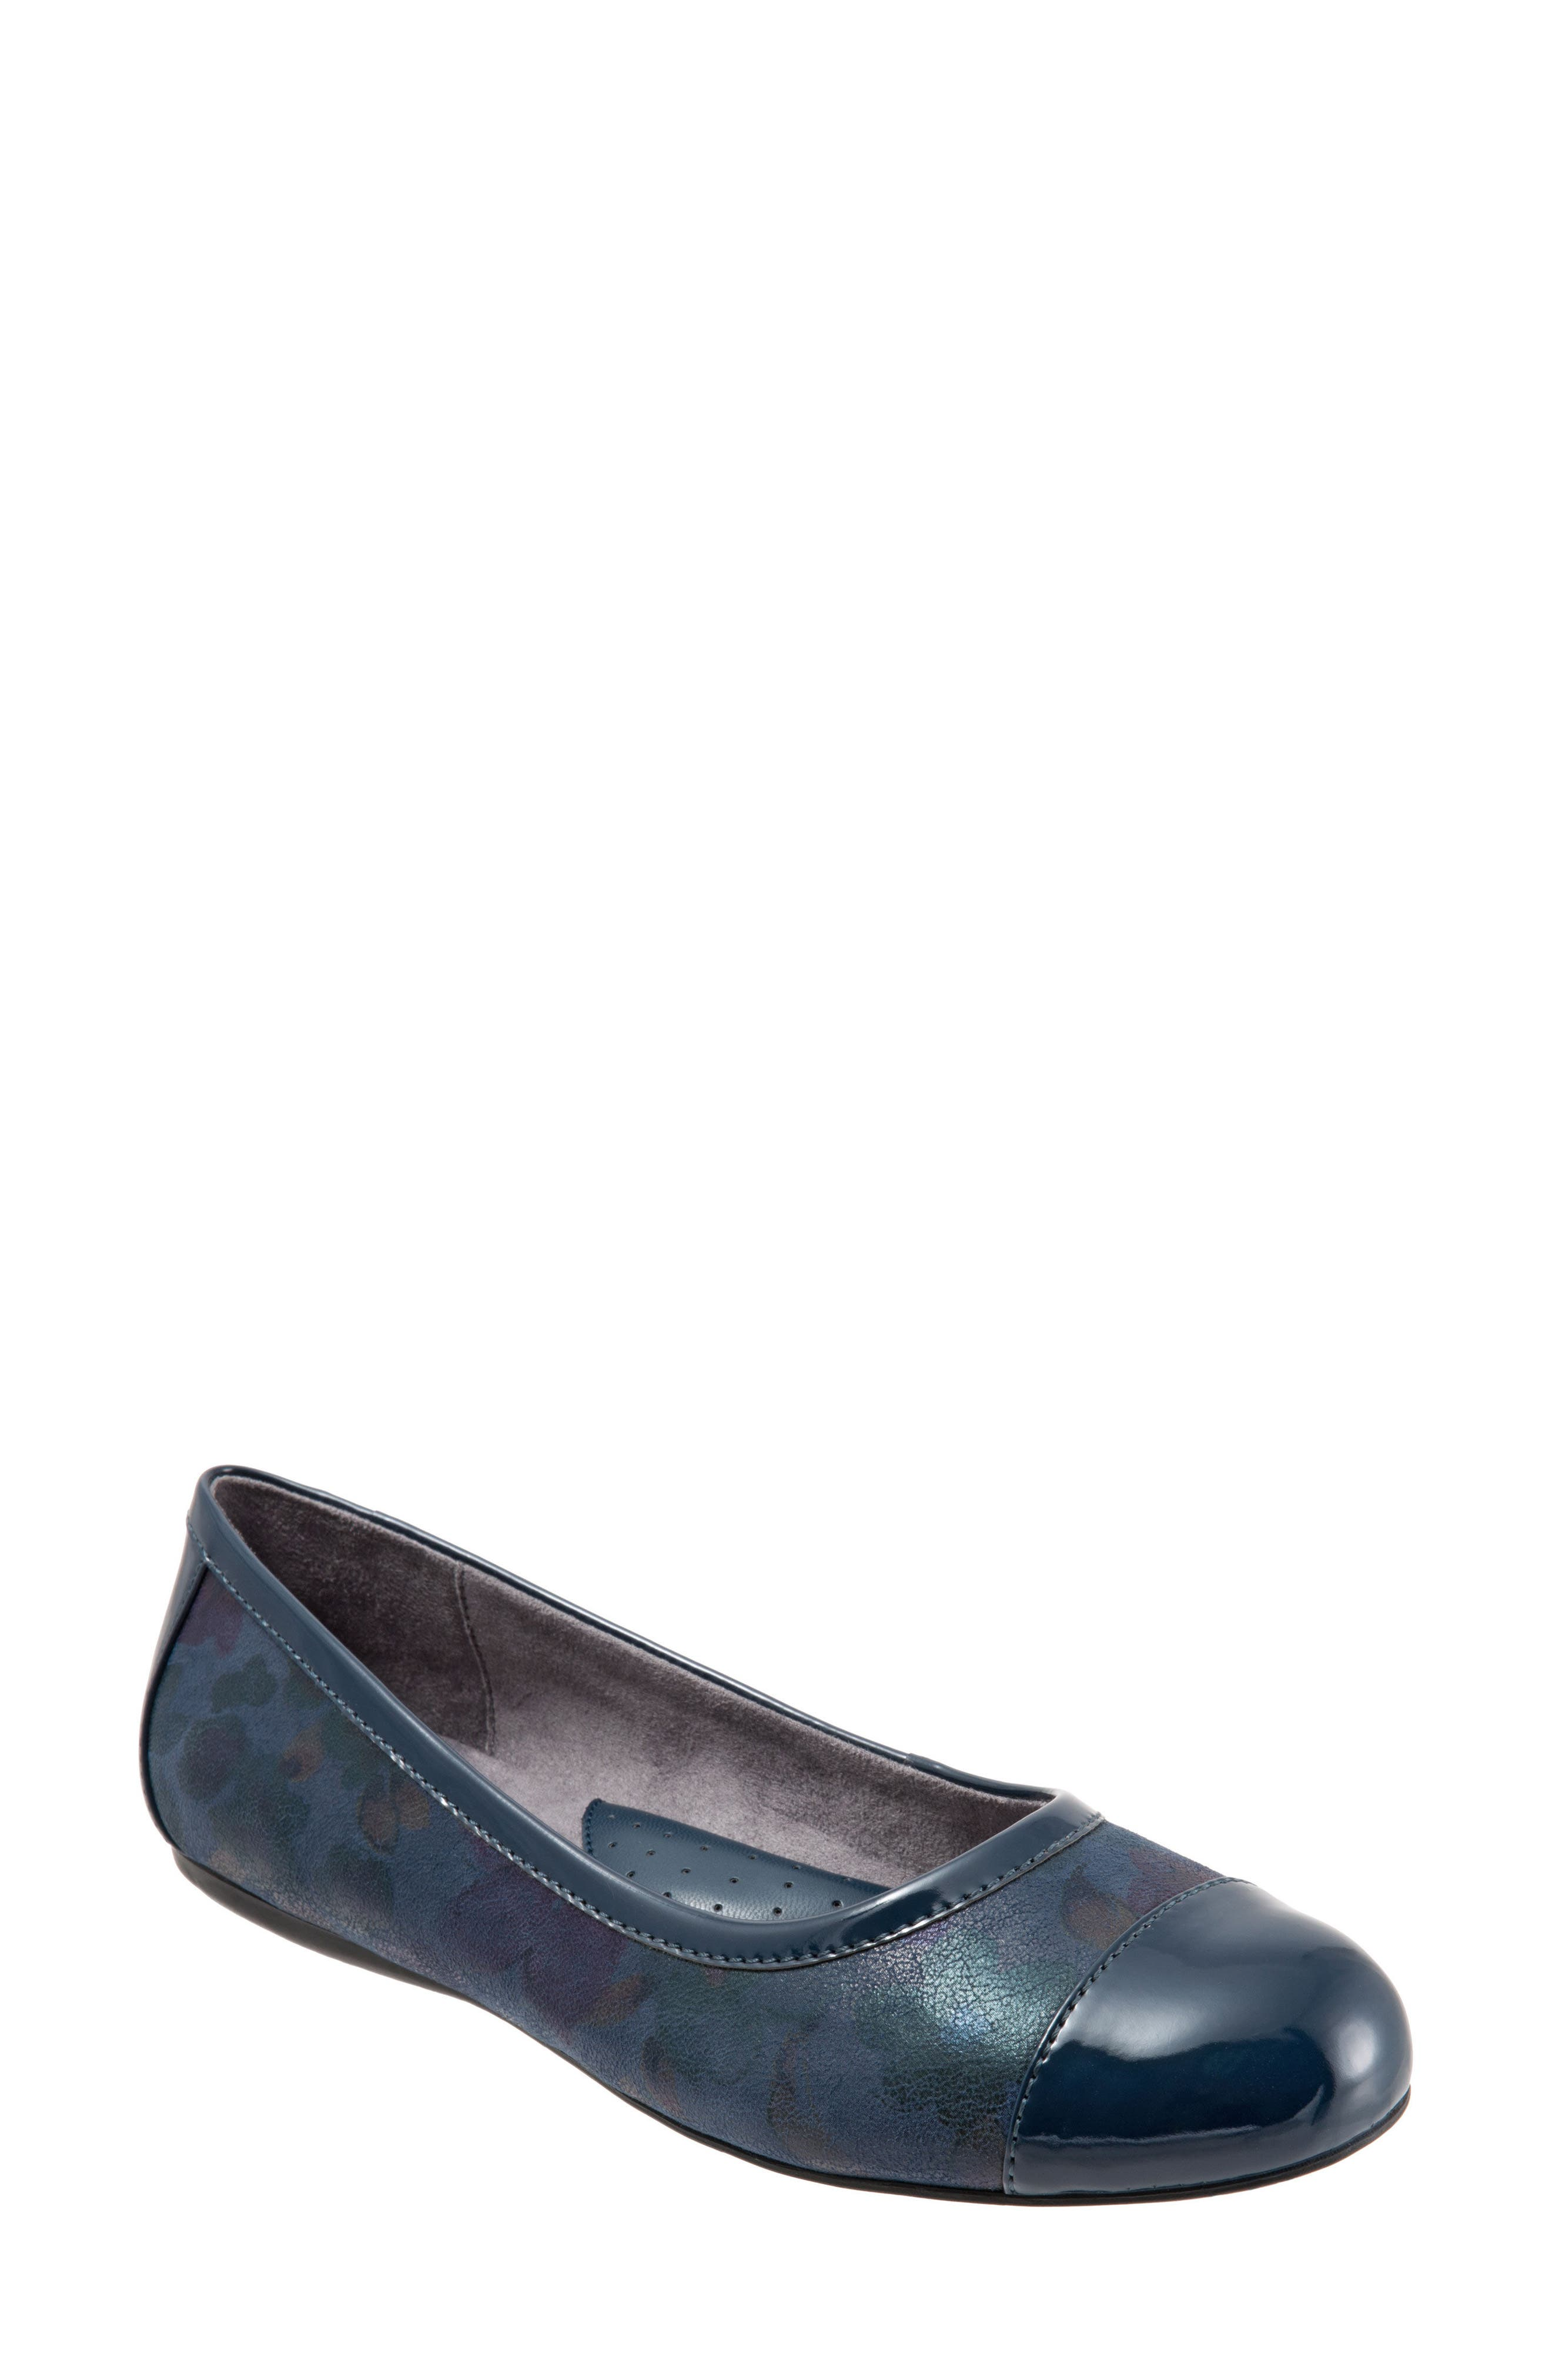 'Napa' Flat,                         Main,                         color, Navy Leather